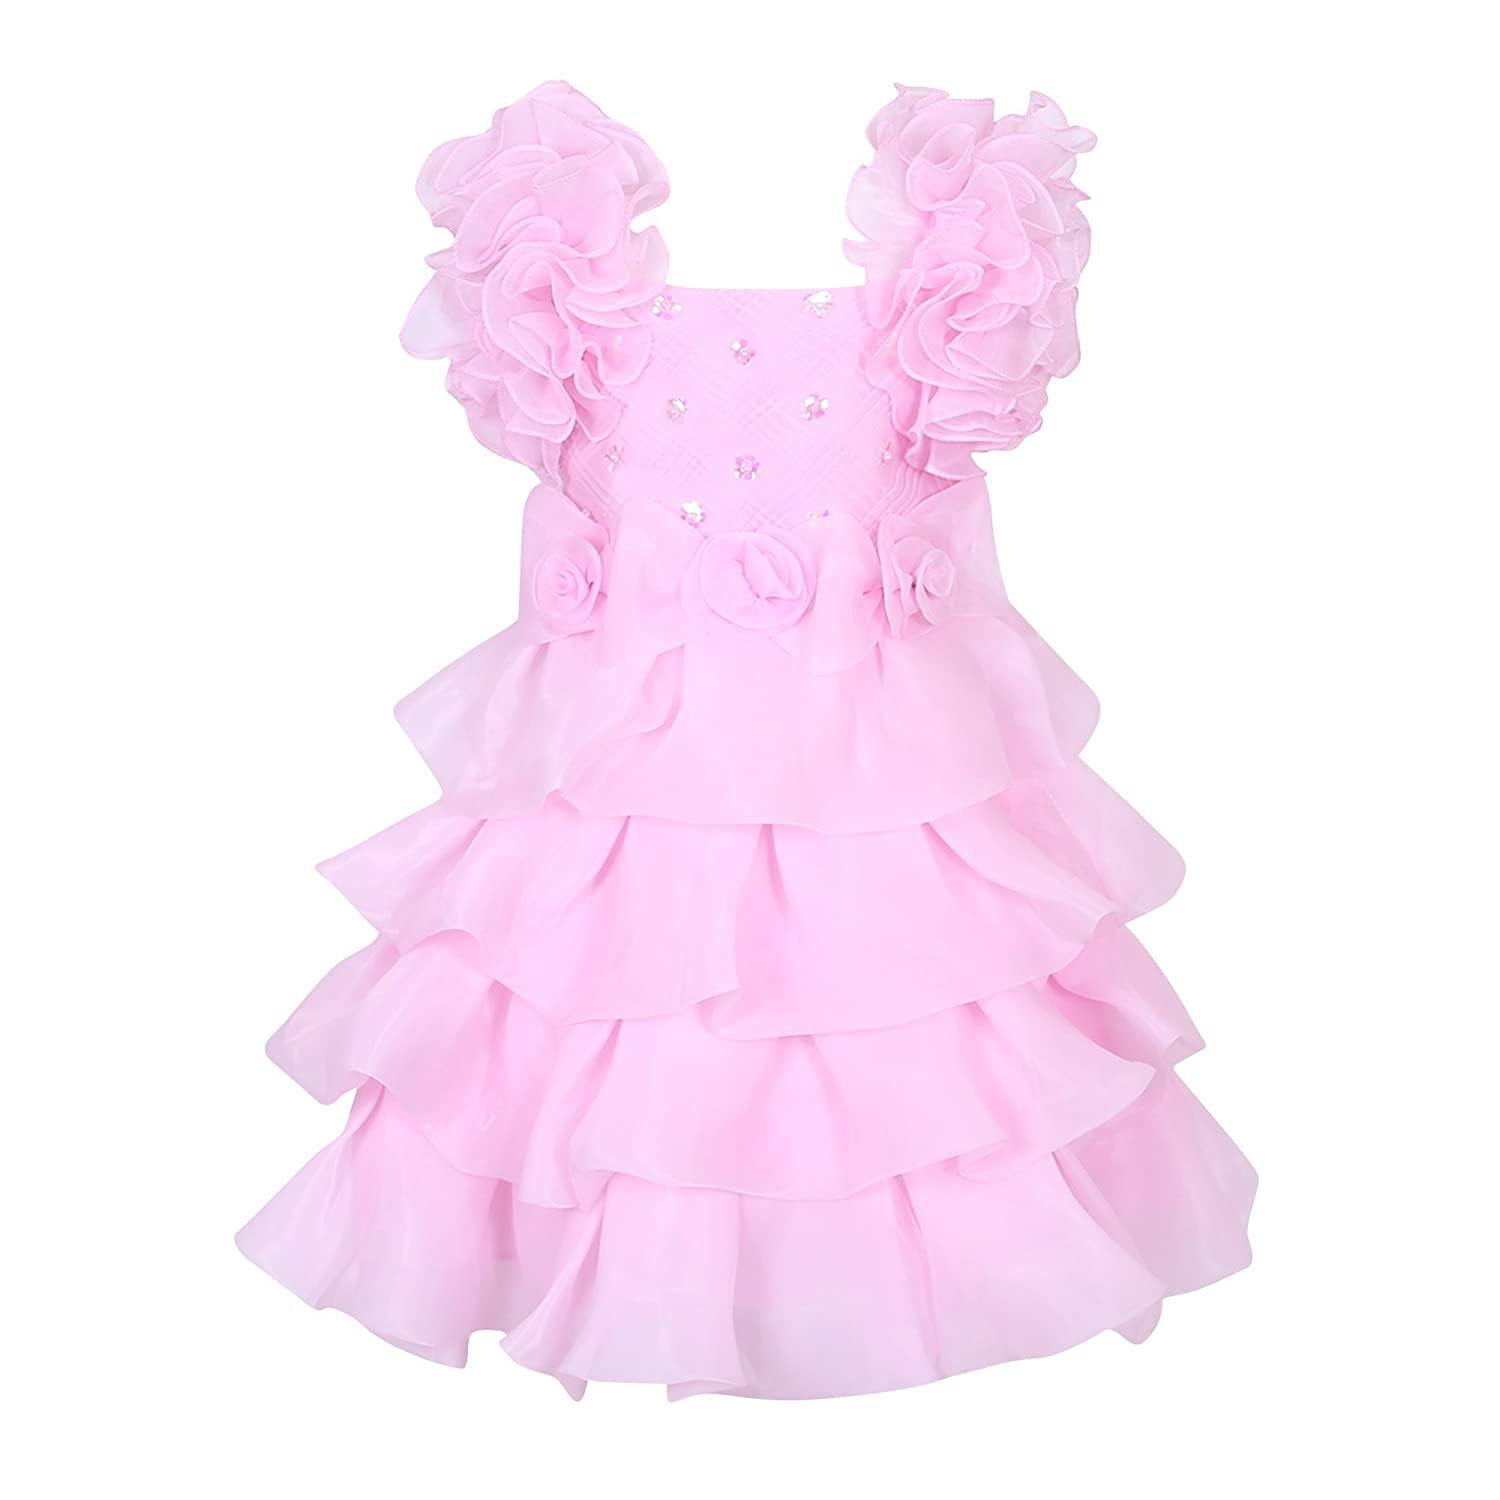 Richie House Girls' Princess Sweet Party Dress Size 3-12Y RH2440